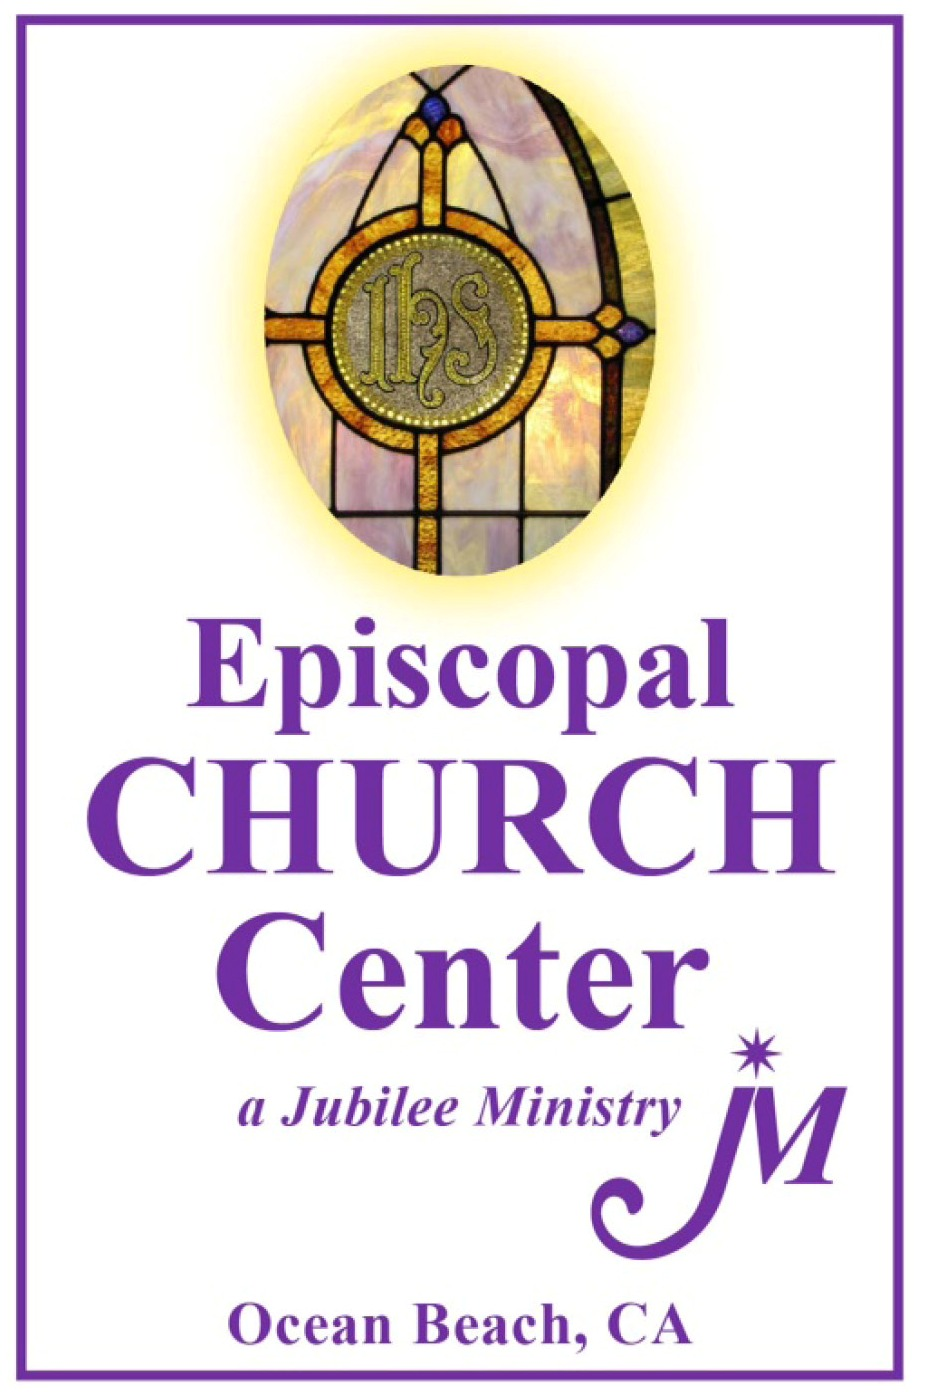 Episcopal Church Center